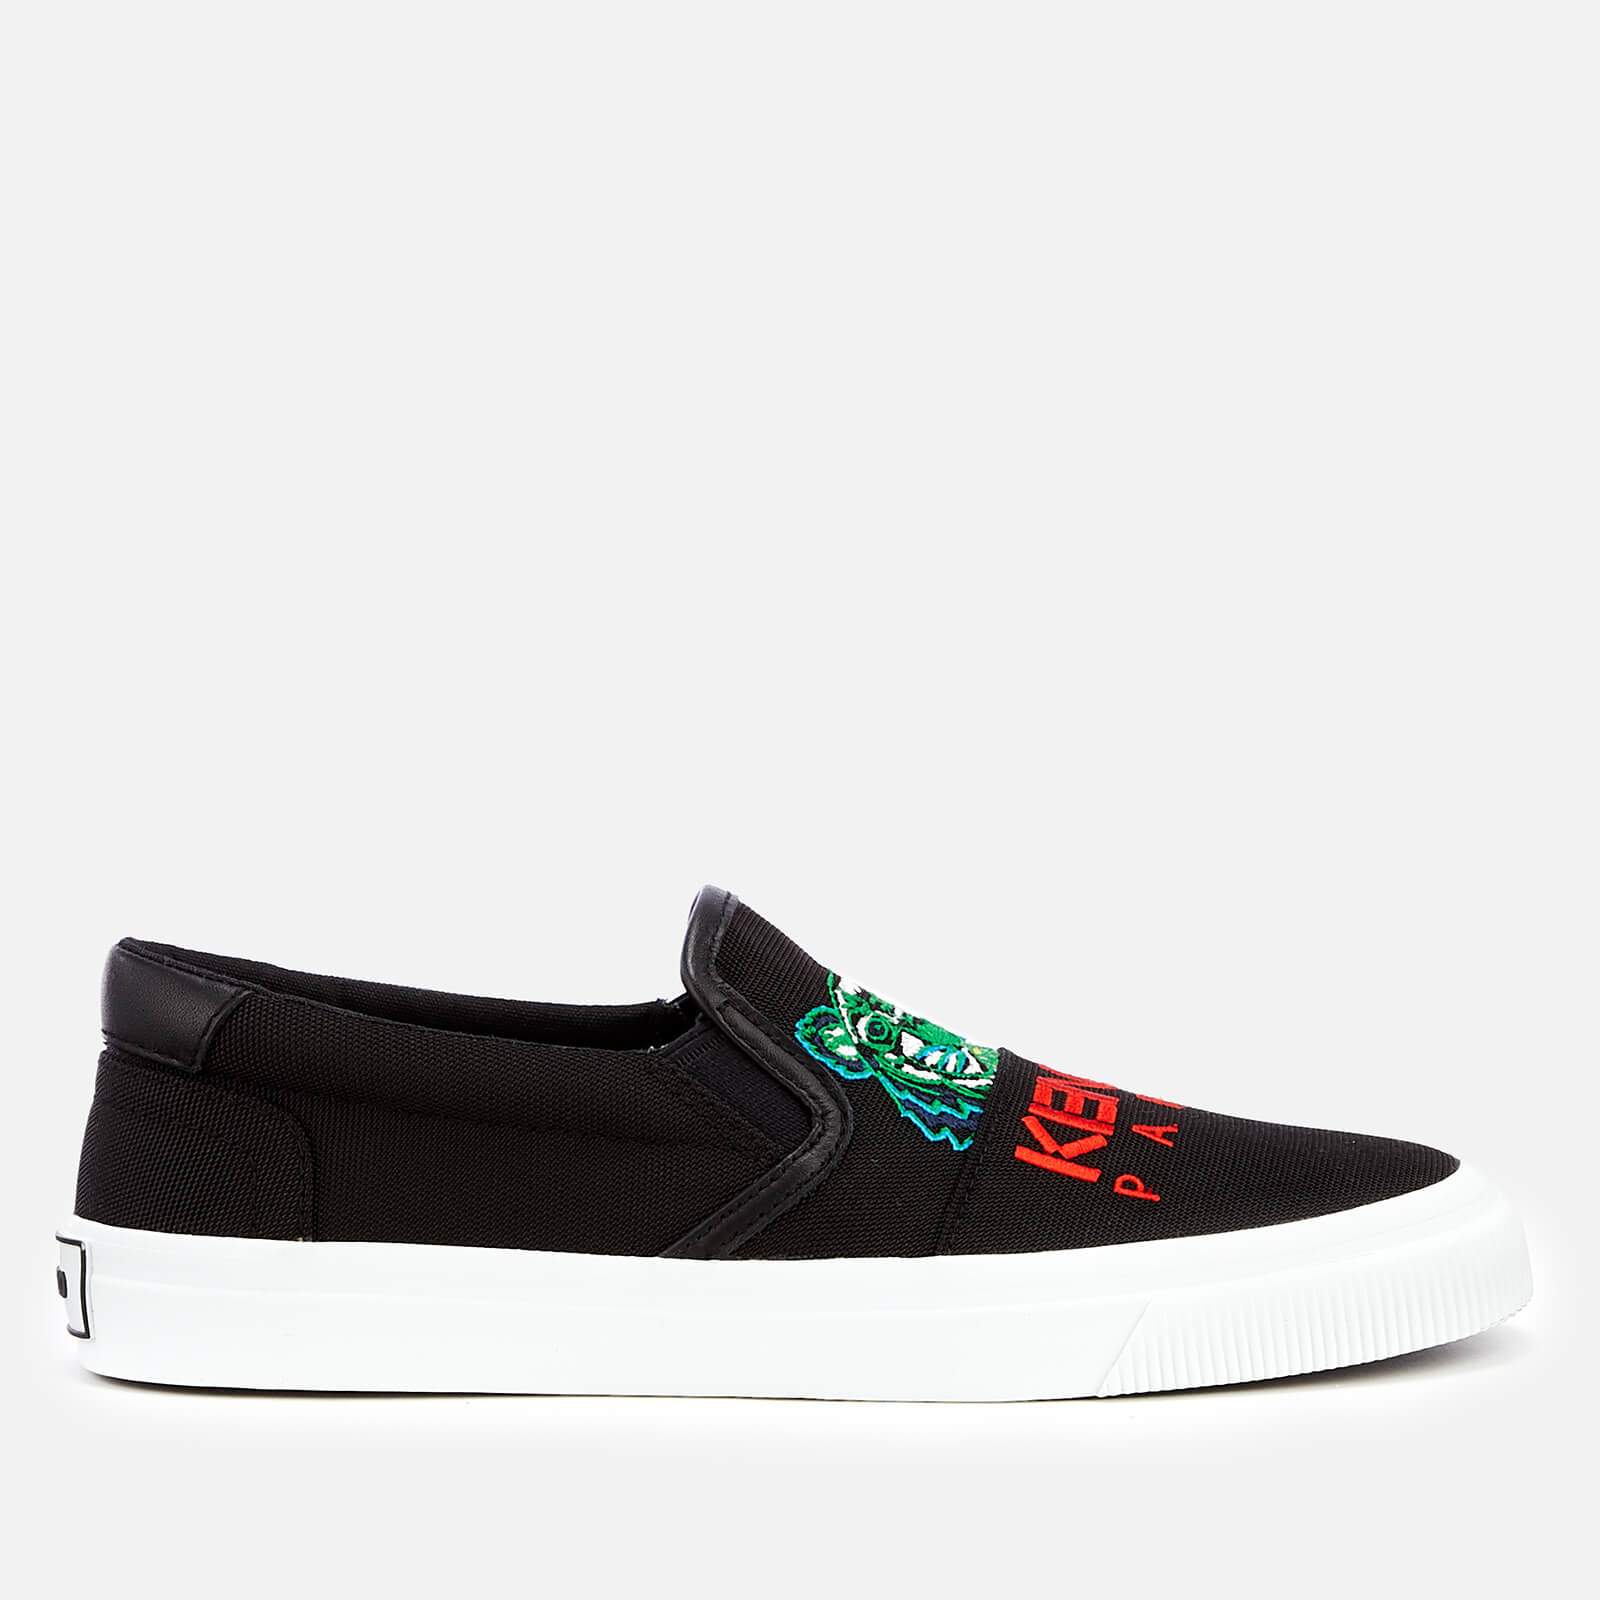 4391bac1 KENZO Women's K-Skate New Tiger Slip-On Trainers - Black - Free UK Delivery  over £50